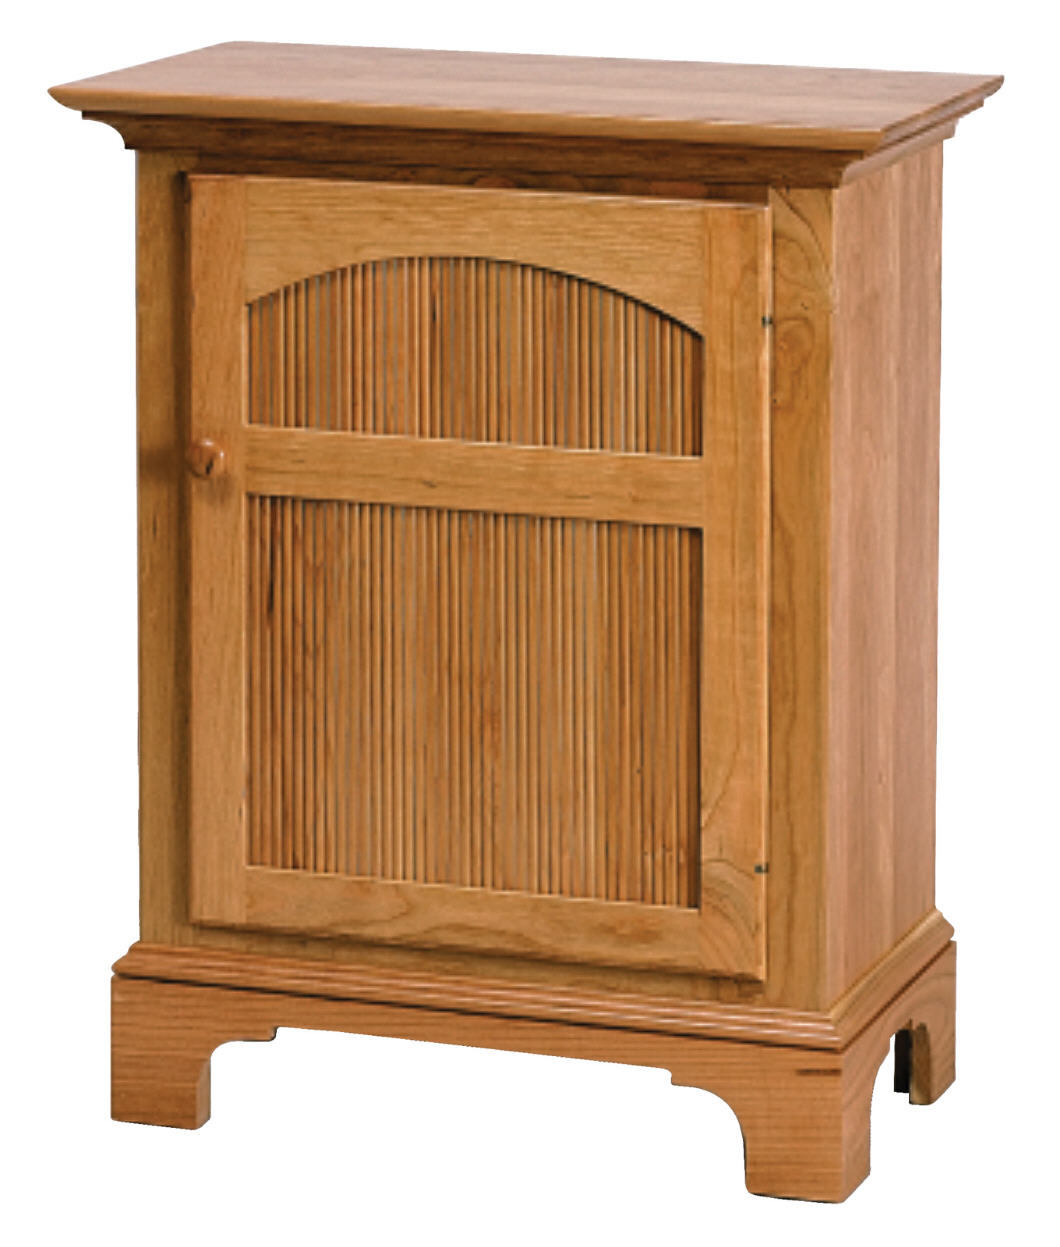 New Bedford Shaker Small Jelly Cupboard